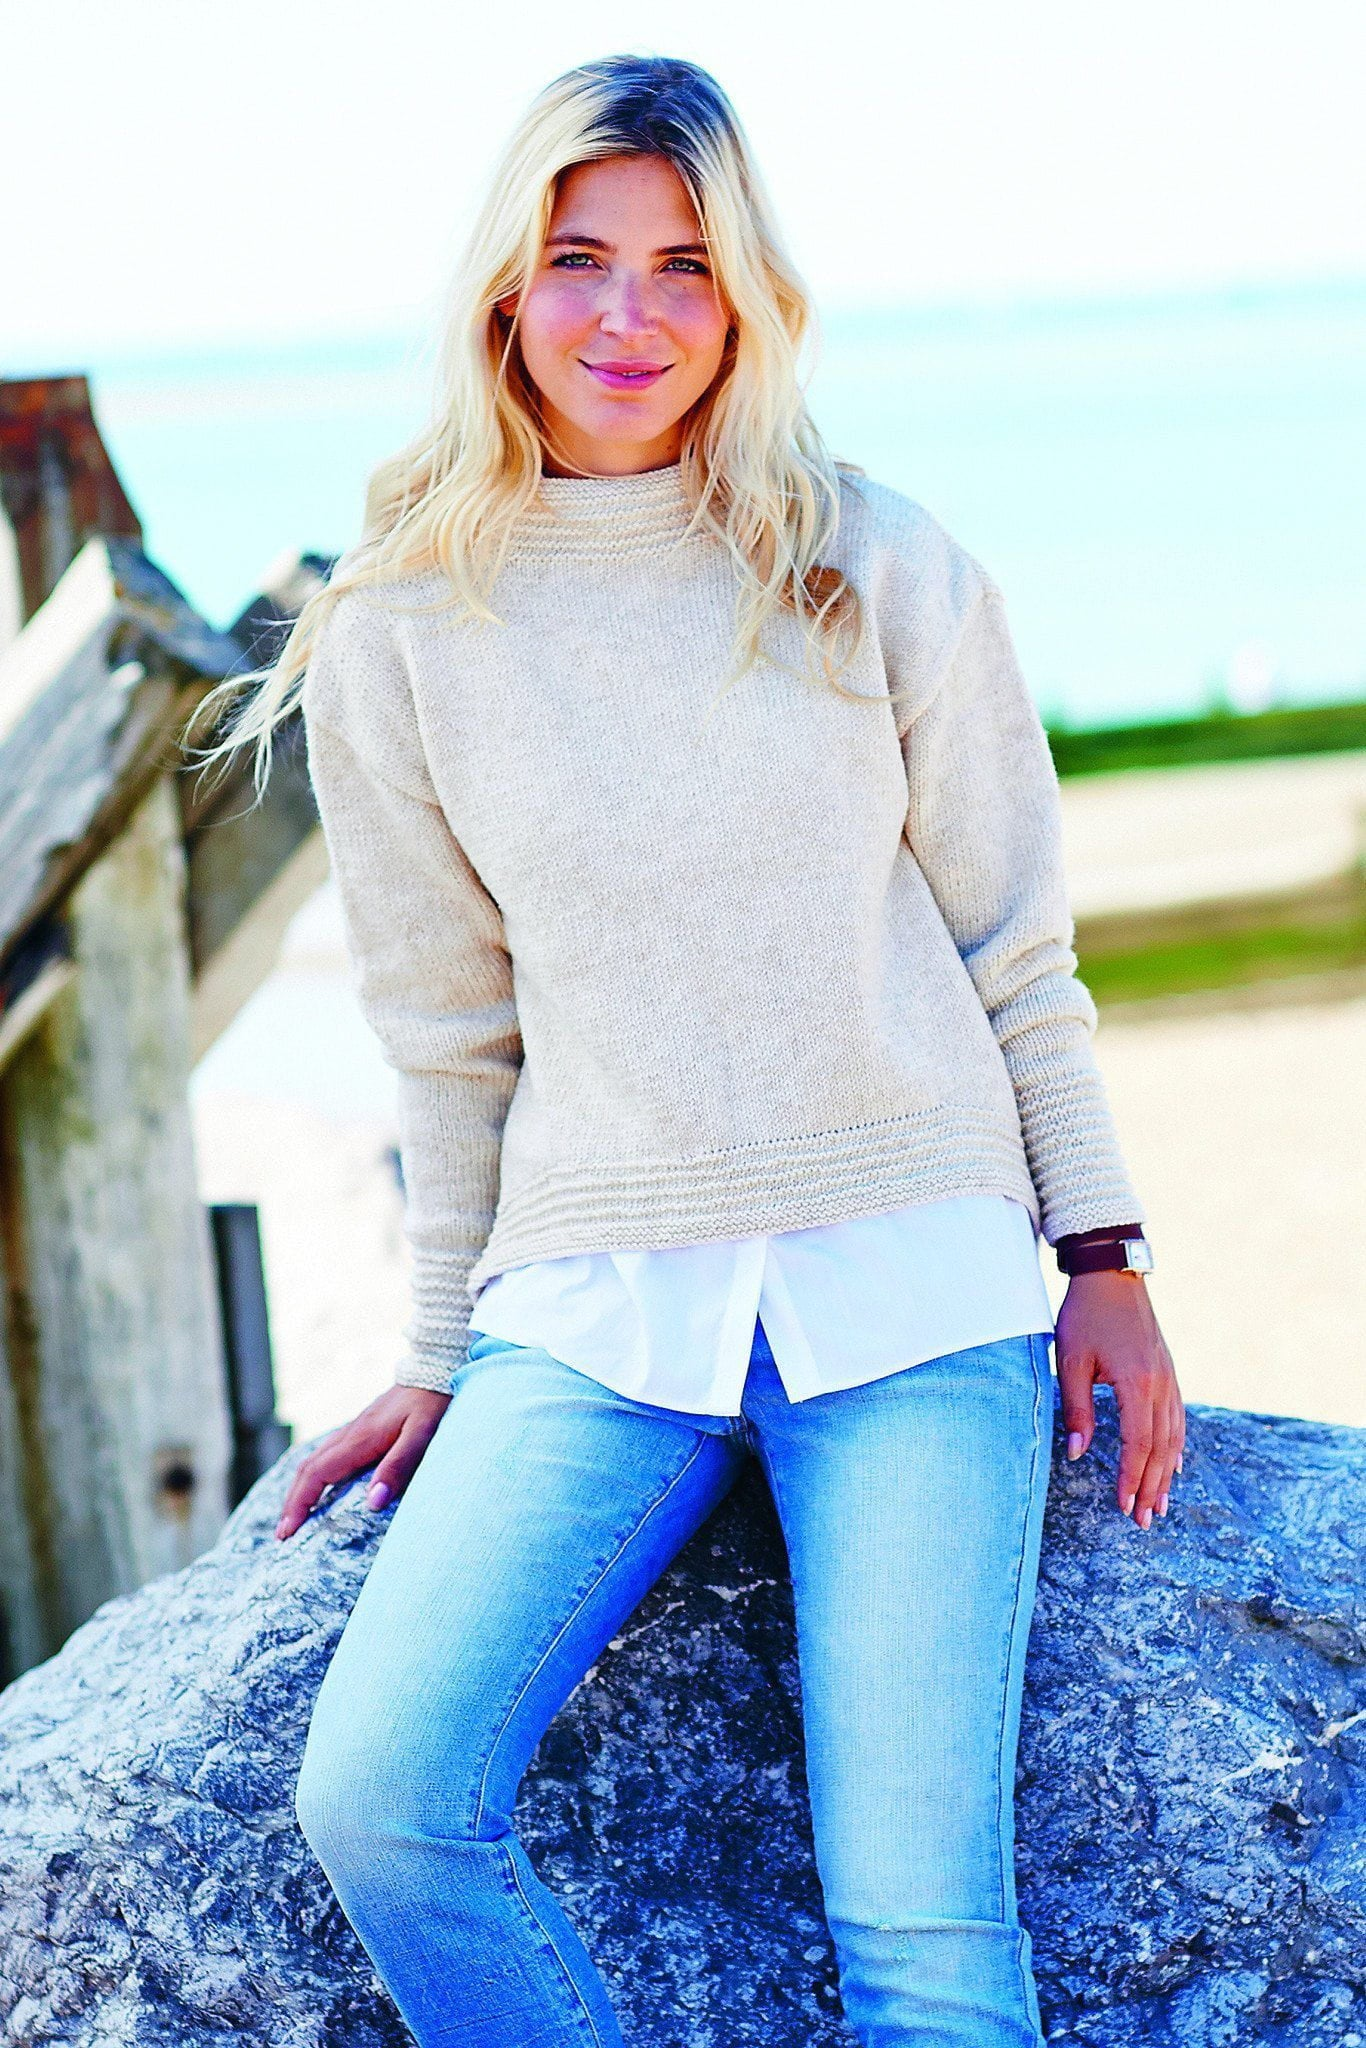 Womens Boat-Neck Jumper Knitting Pattern – The Knitting Network